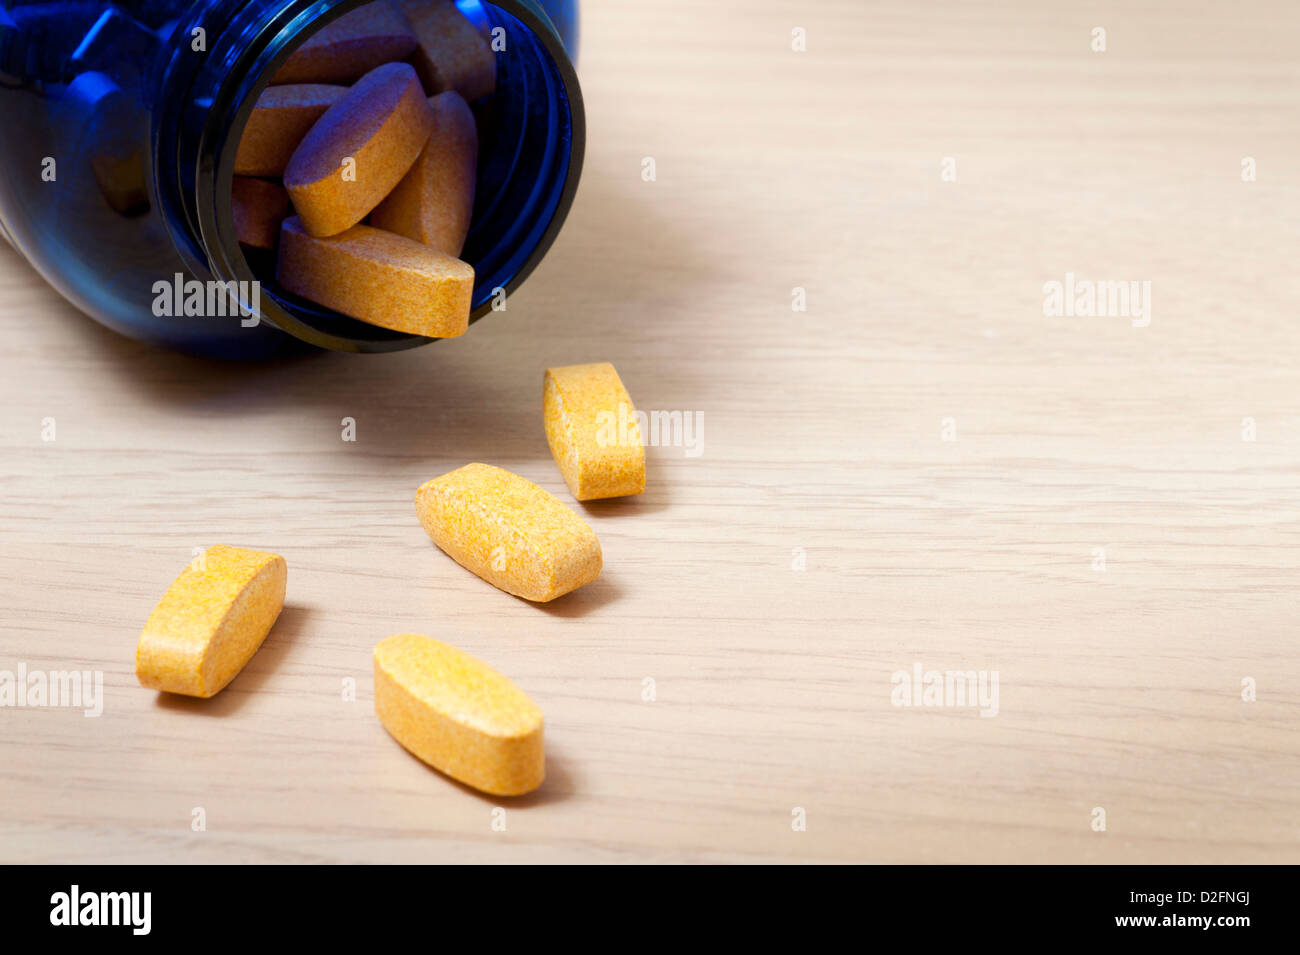 Blue bottle of yellow vitamin pills with some spilling out onto the table - Stock Image